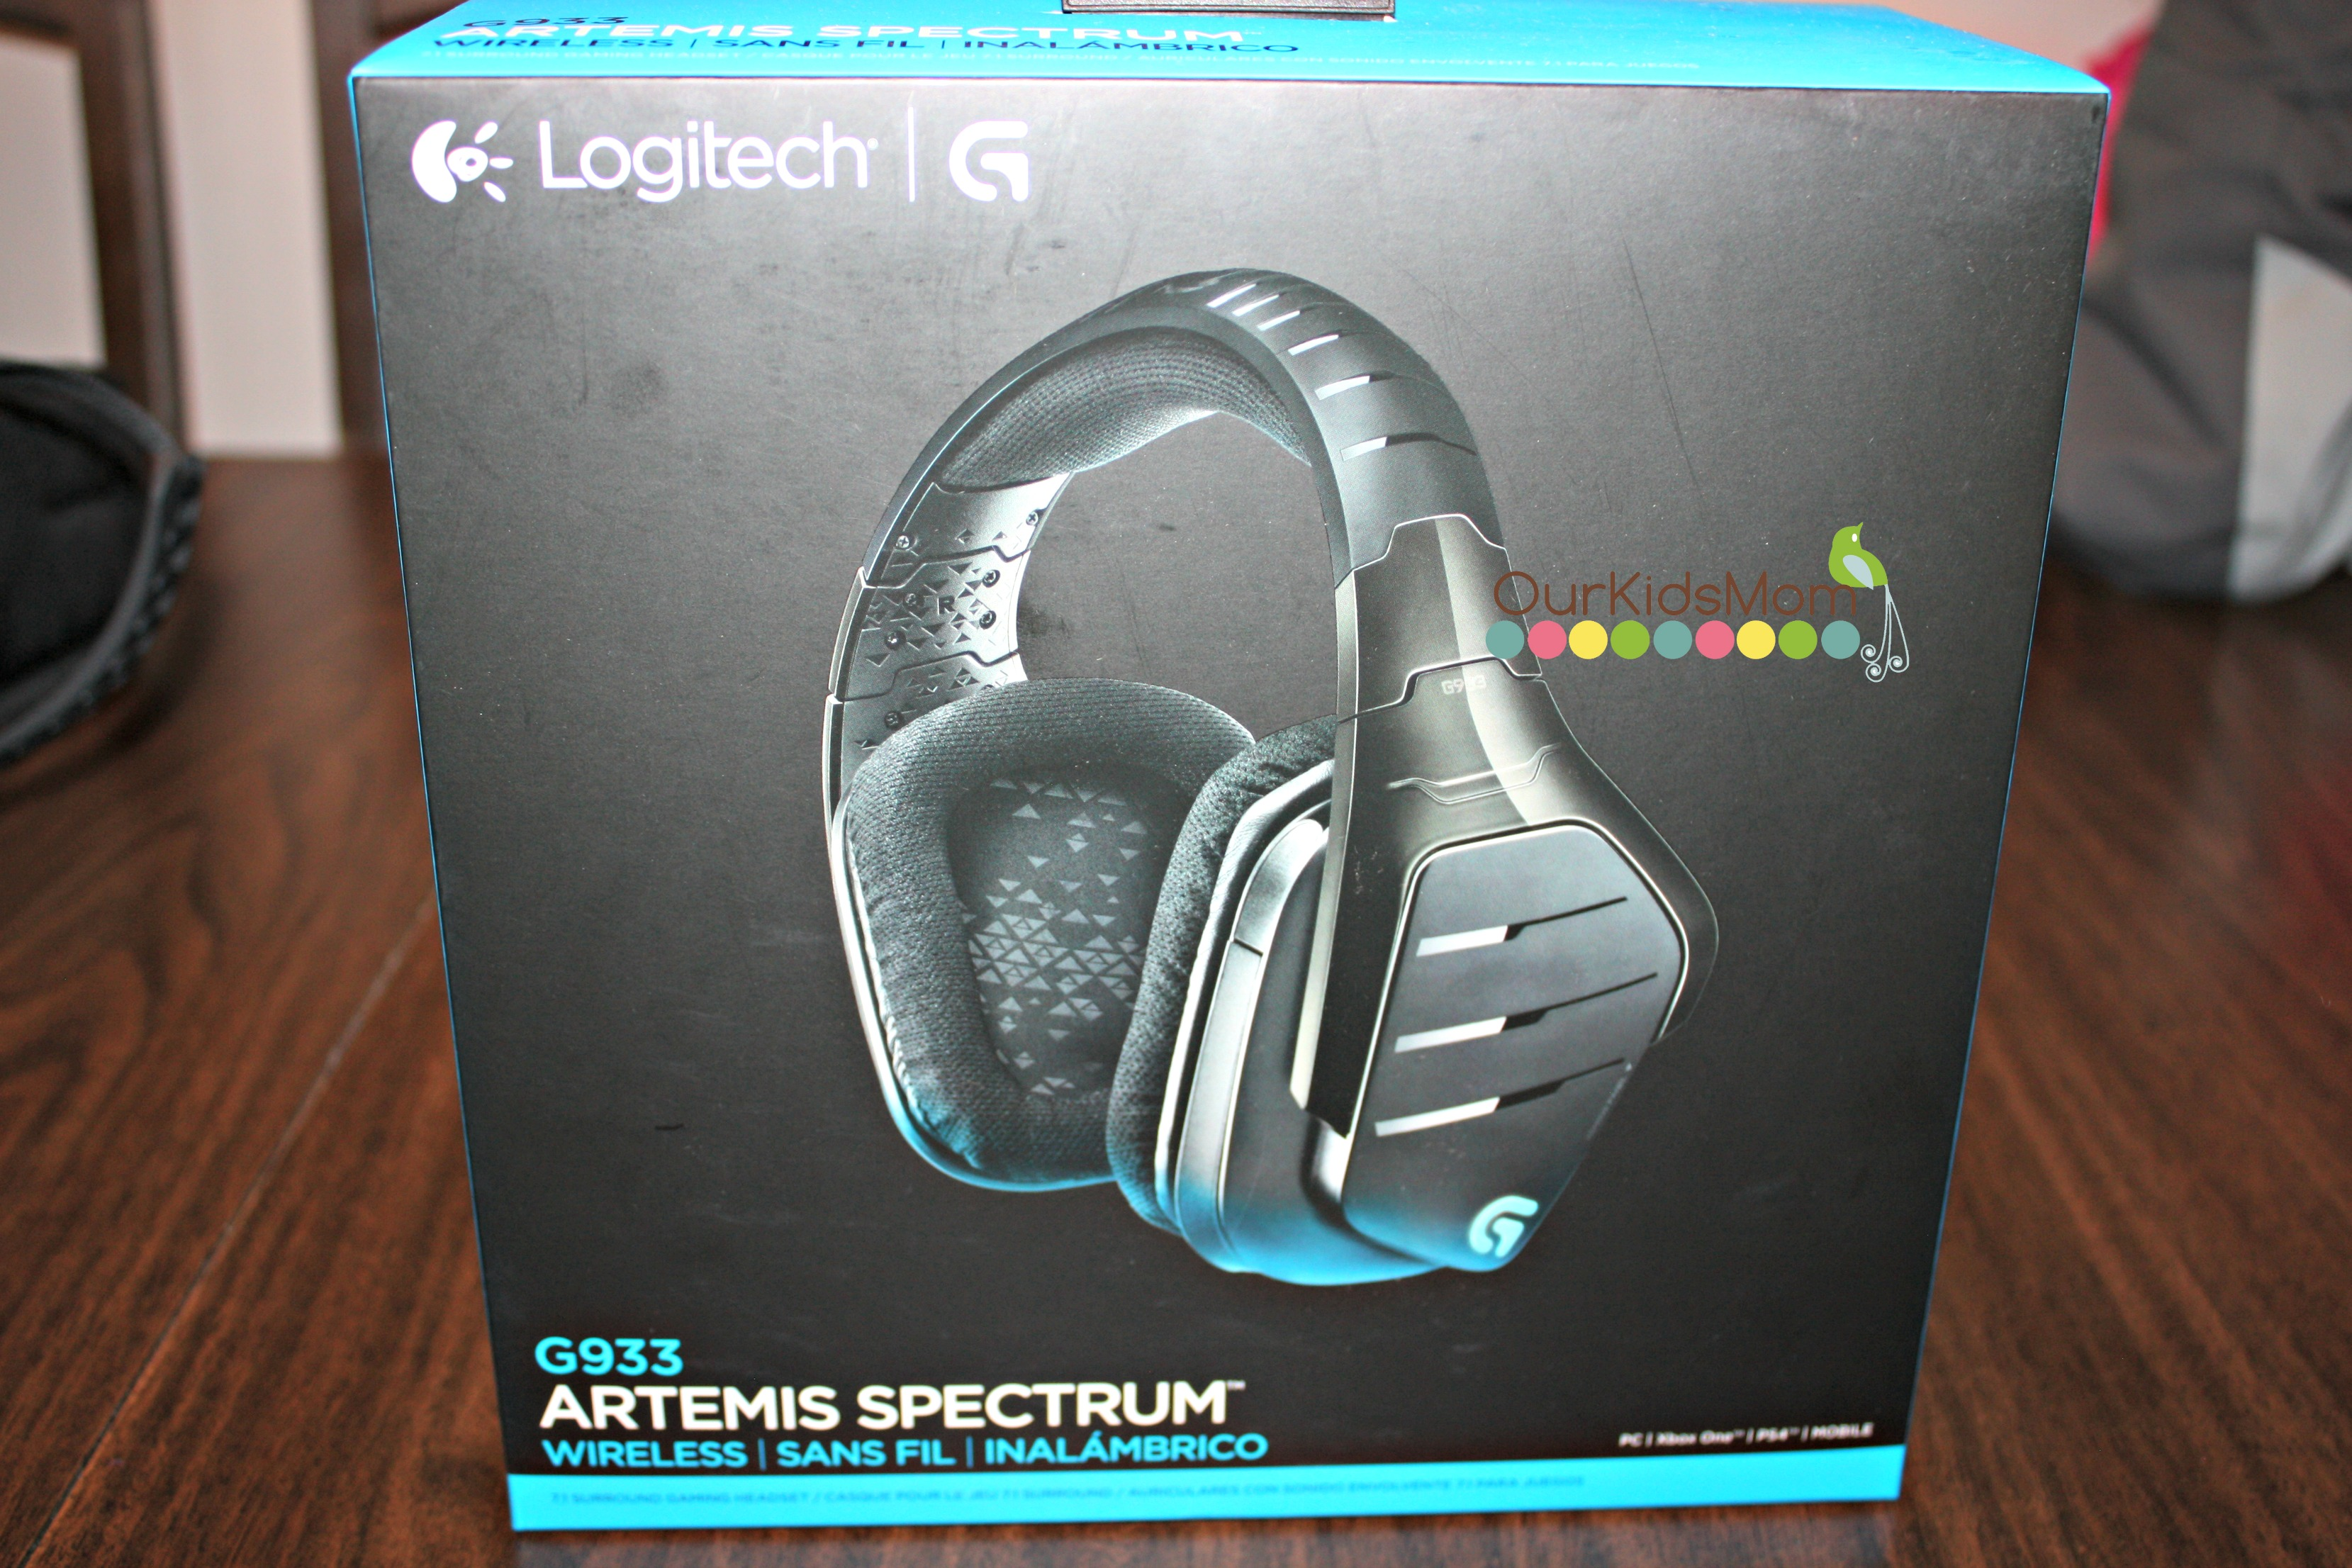 Headset in the box